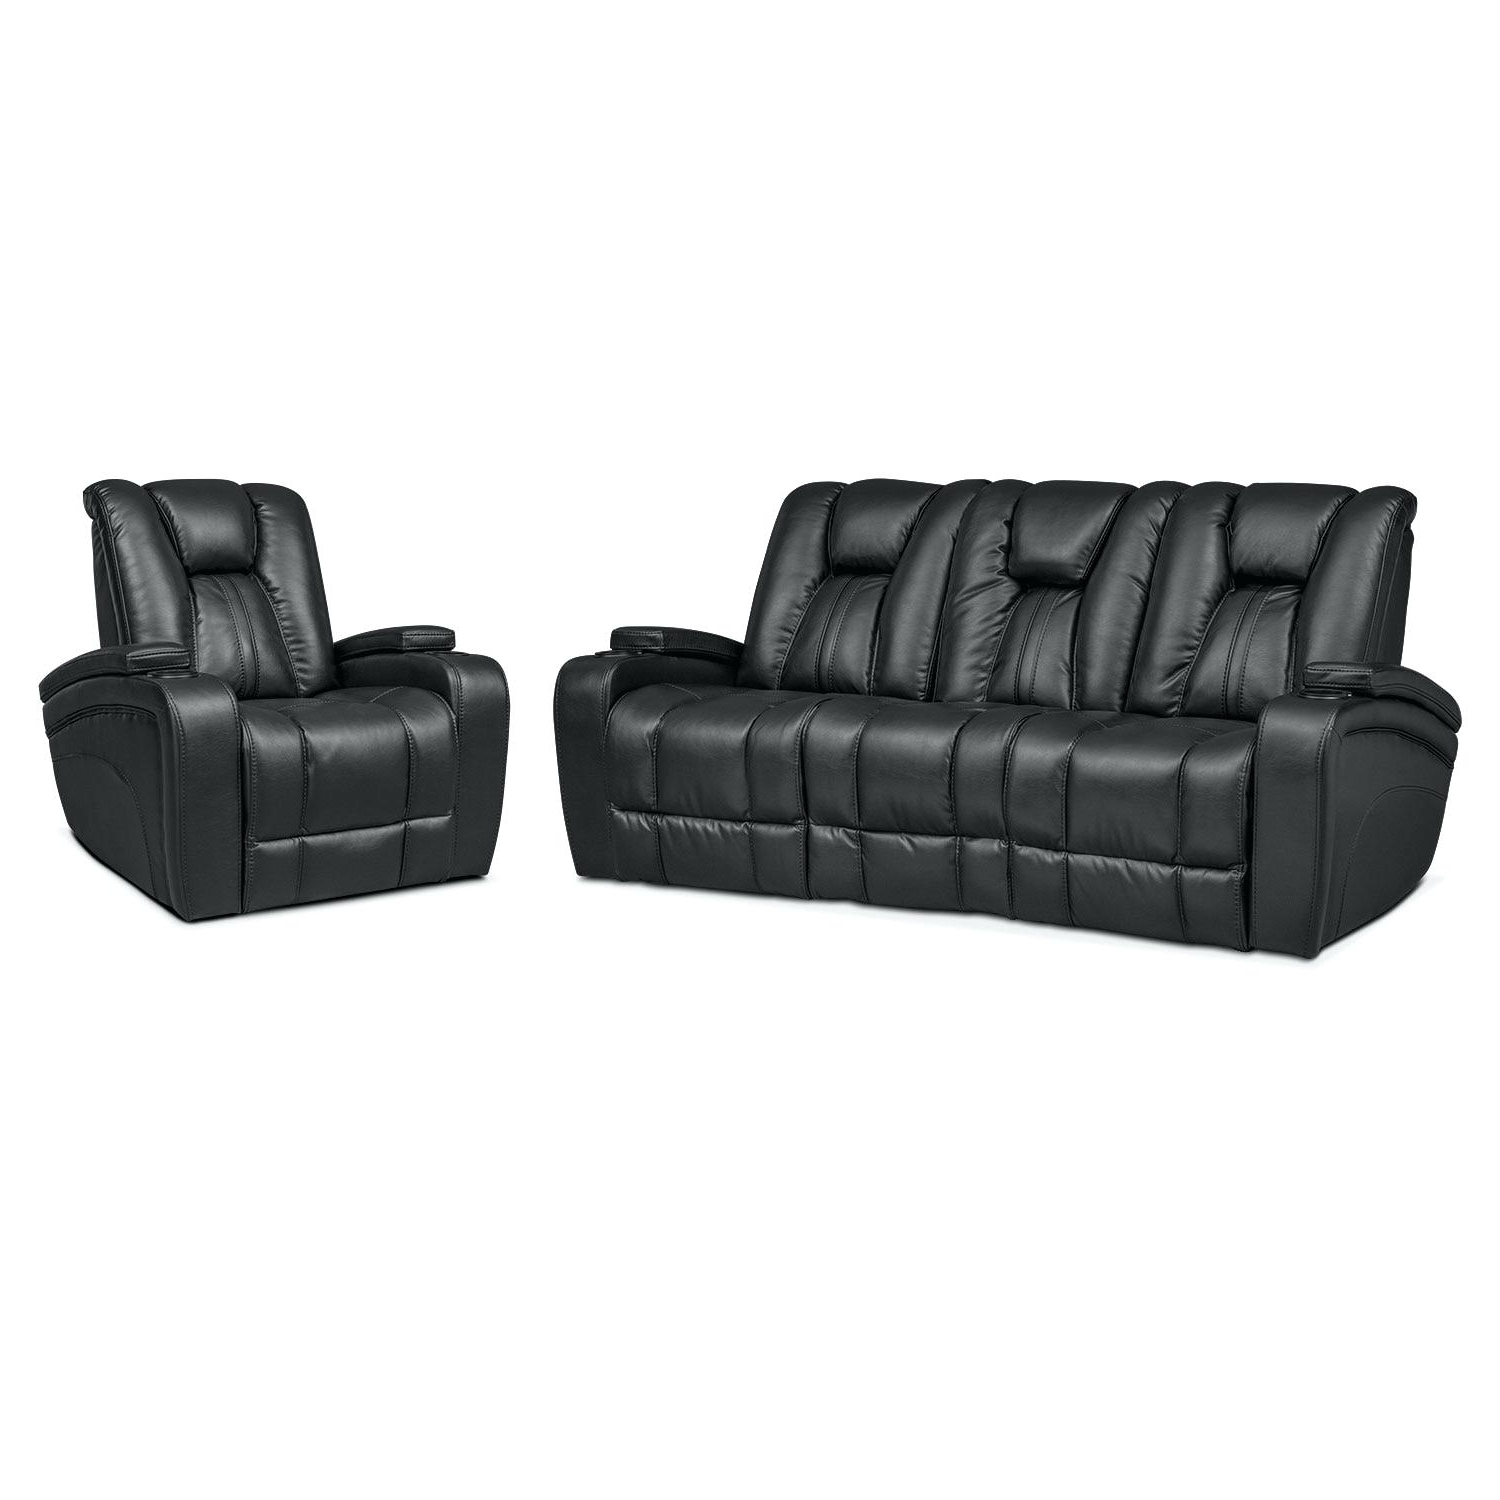 Sectional Sofas At Amazon Throughout Current Sofa : Amazon Reclining Chairs Single Seat Sofa Recliner Chairs (View 14 of 20)